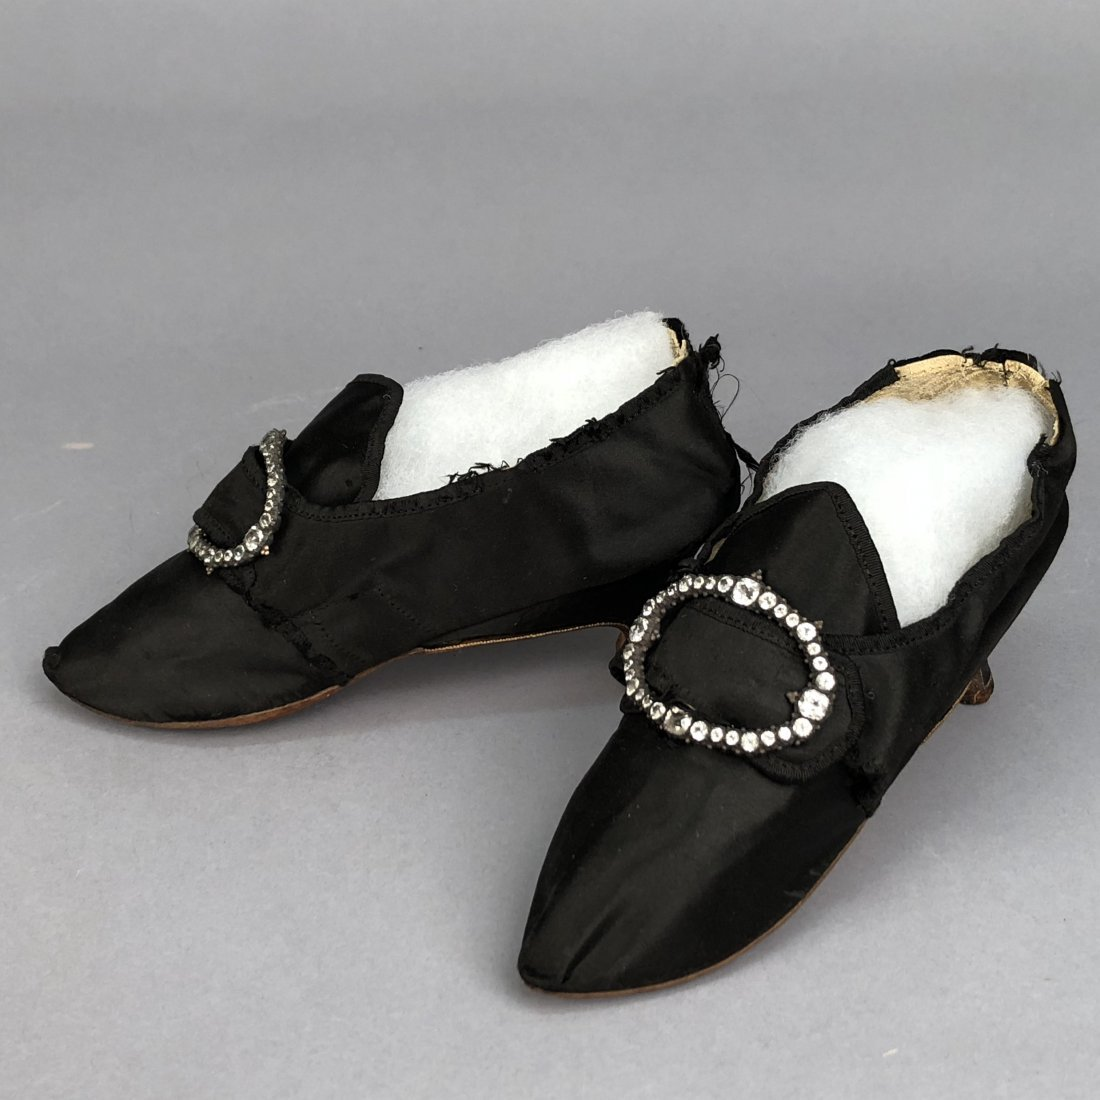 SATIN SHOES with DIAMANTE BUCKLES, 1770s